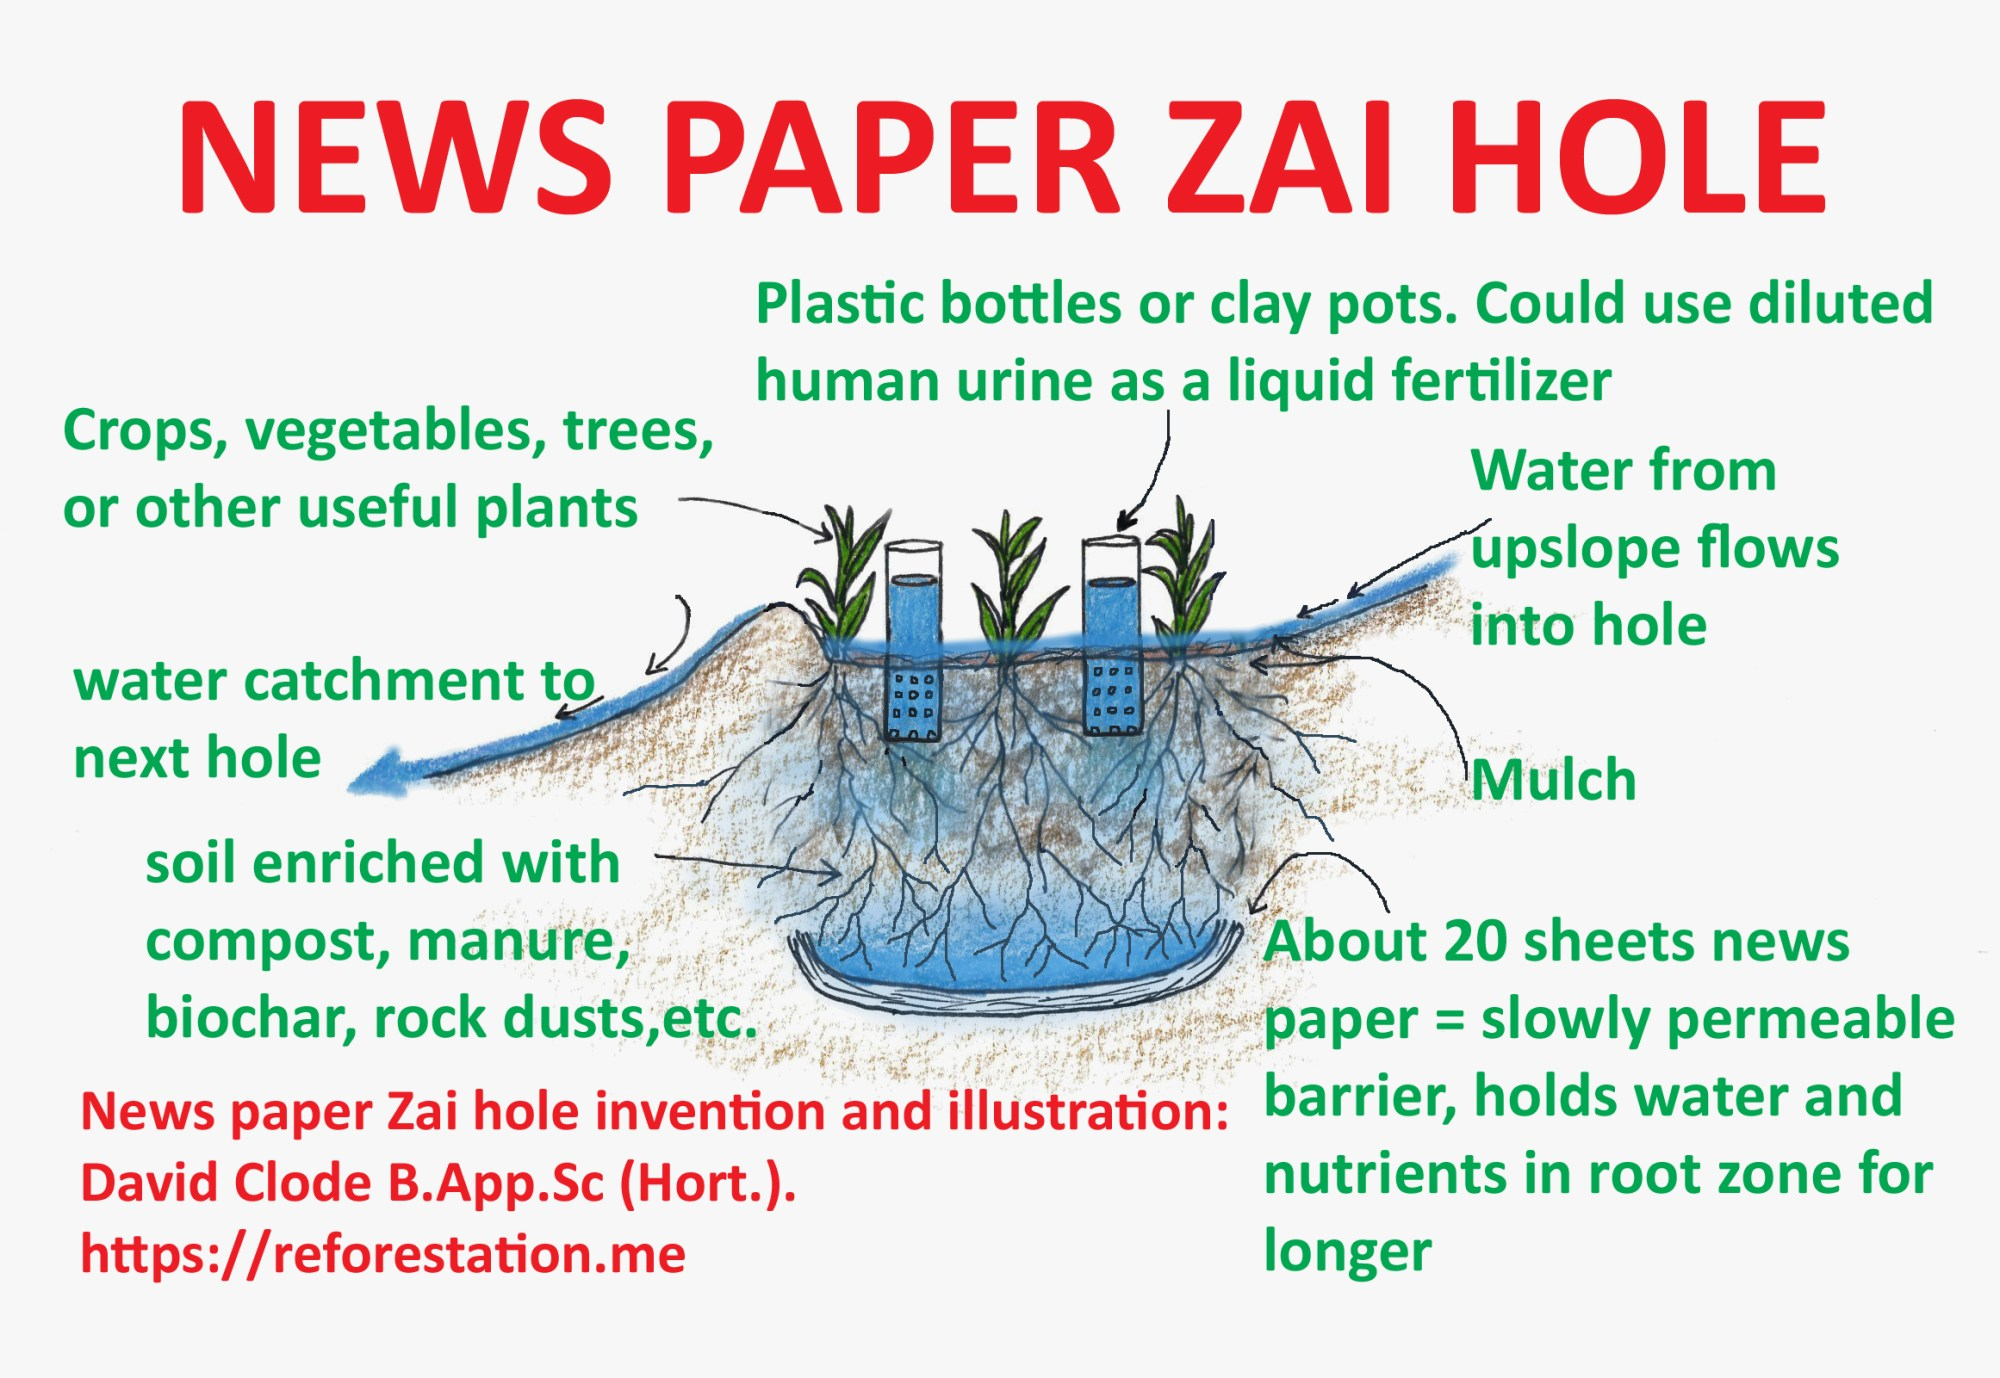 hight resolution of news paper zai hole about 20 sheets of news paper at the base of the hole form a slowly permeable barrier this theoretically holds water and nutrients in